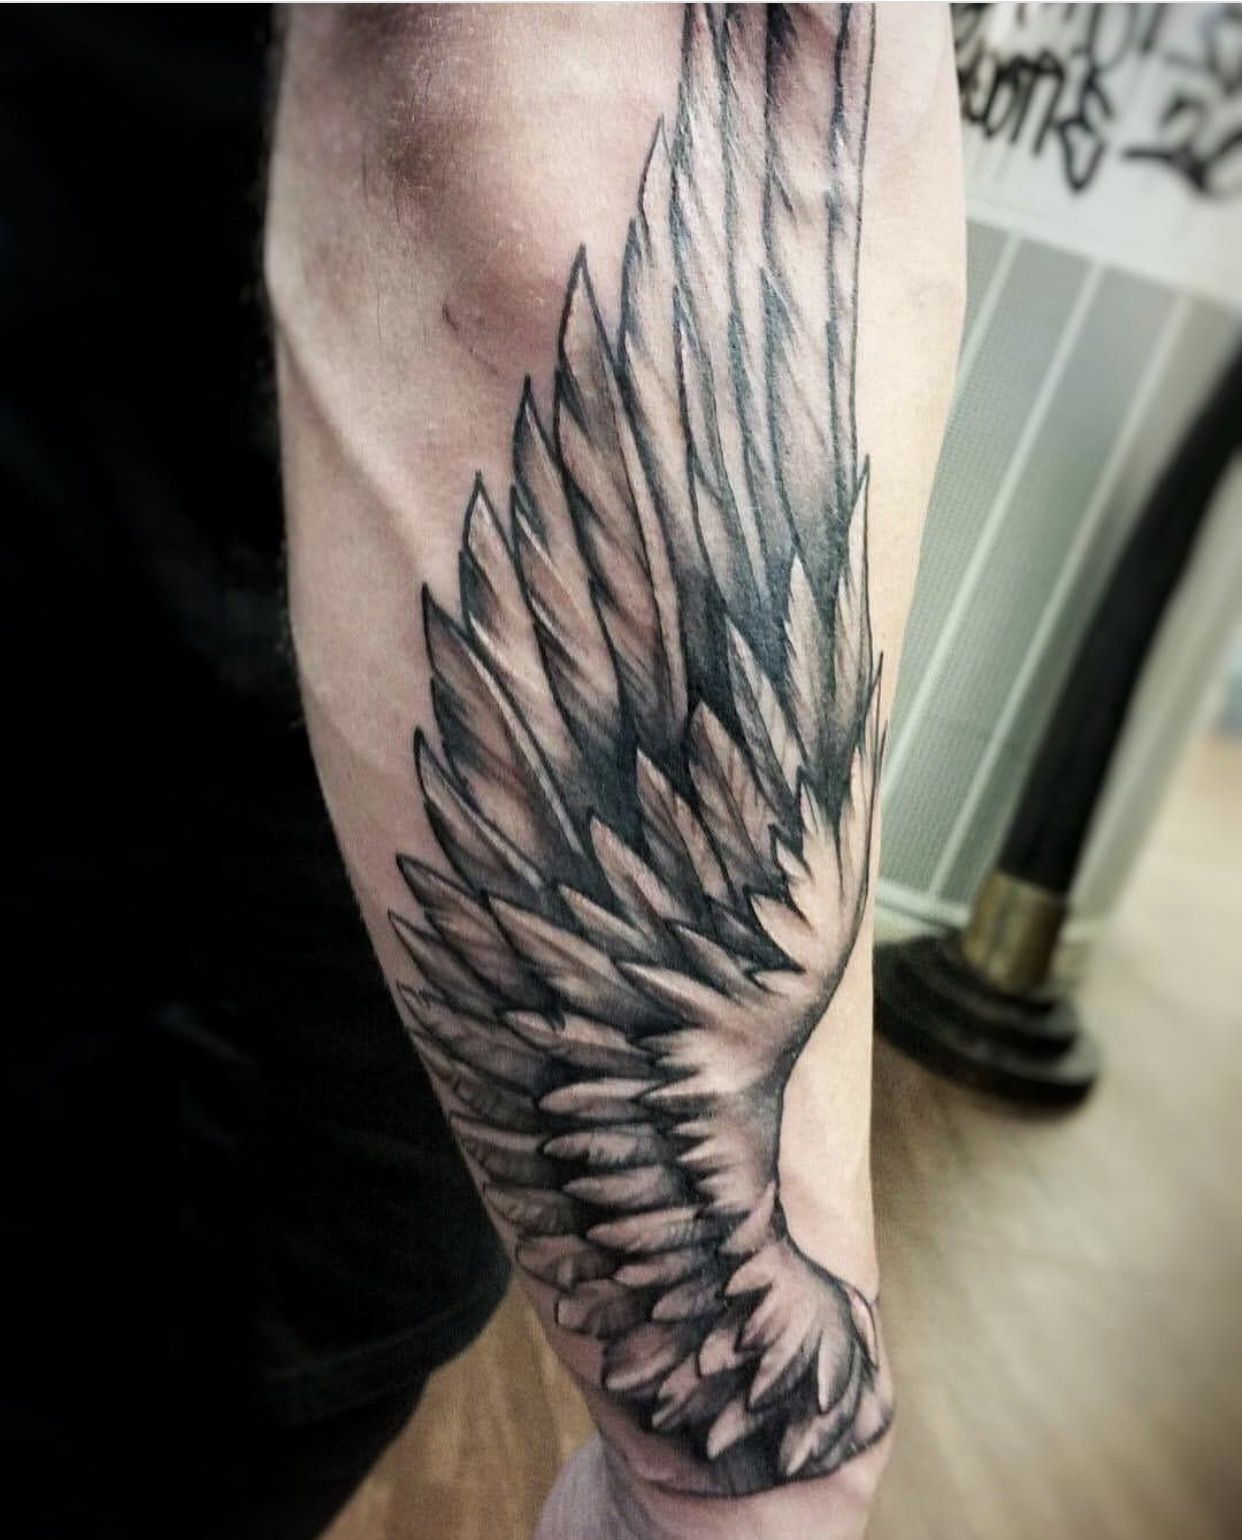 Tattoos For Guys, Forearm Wing Tattoo